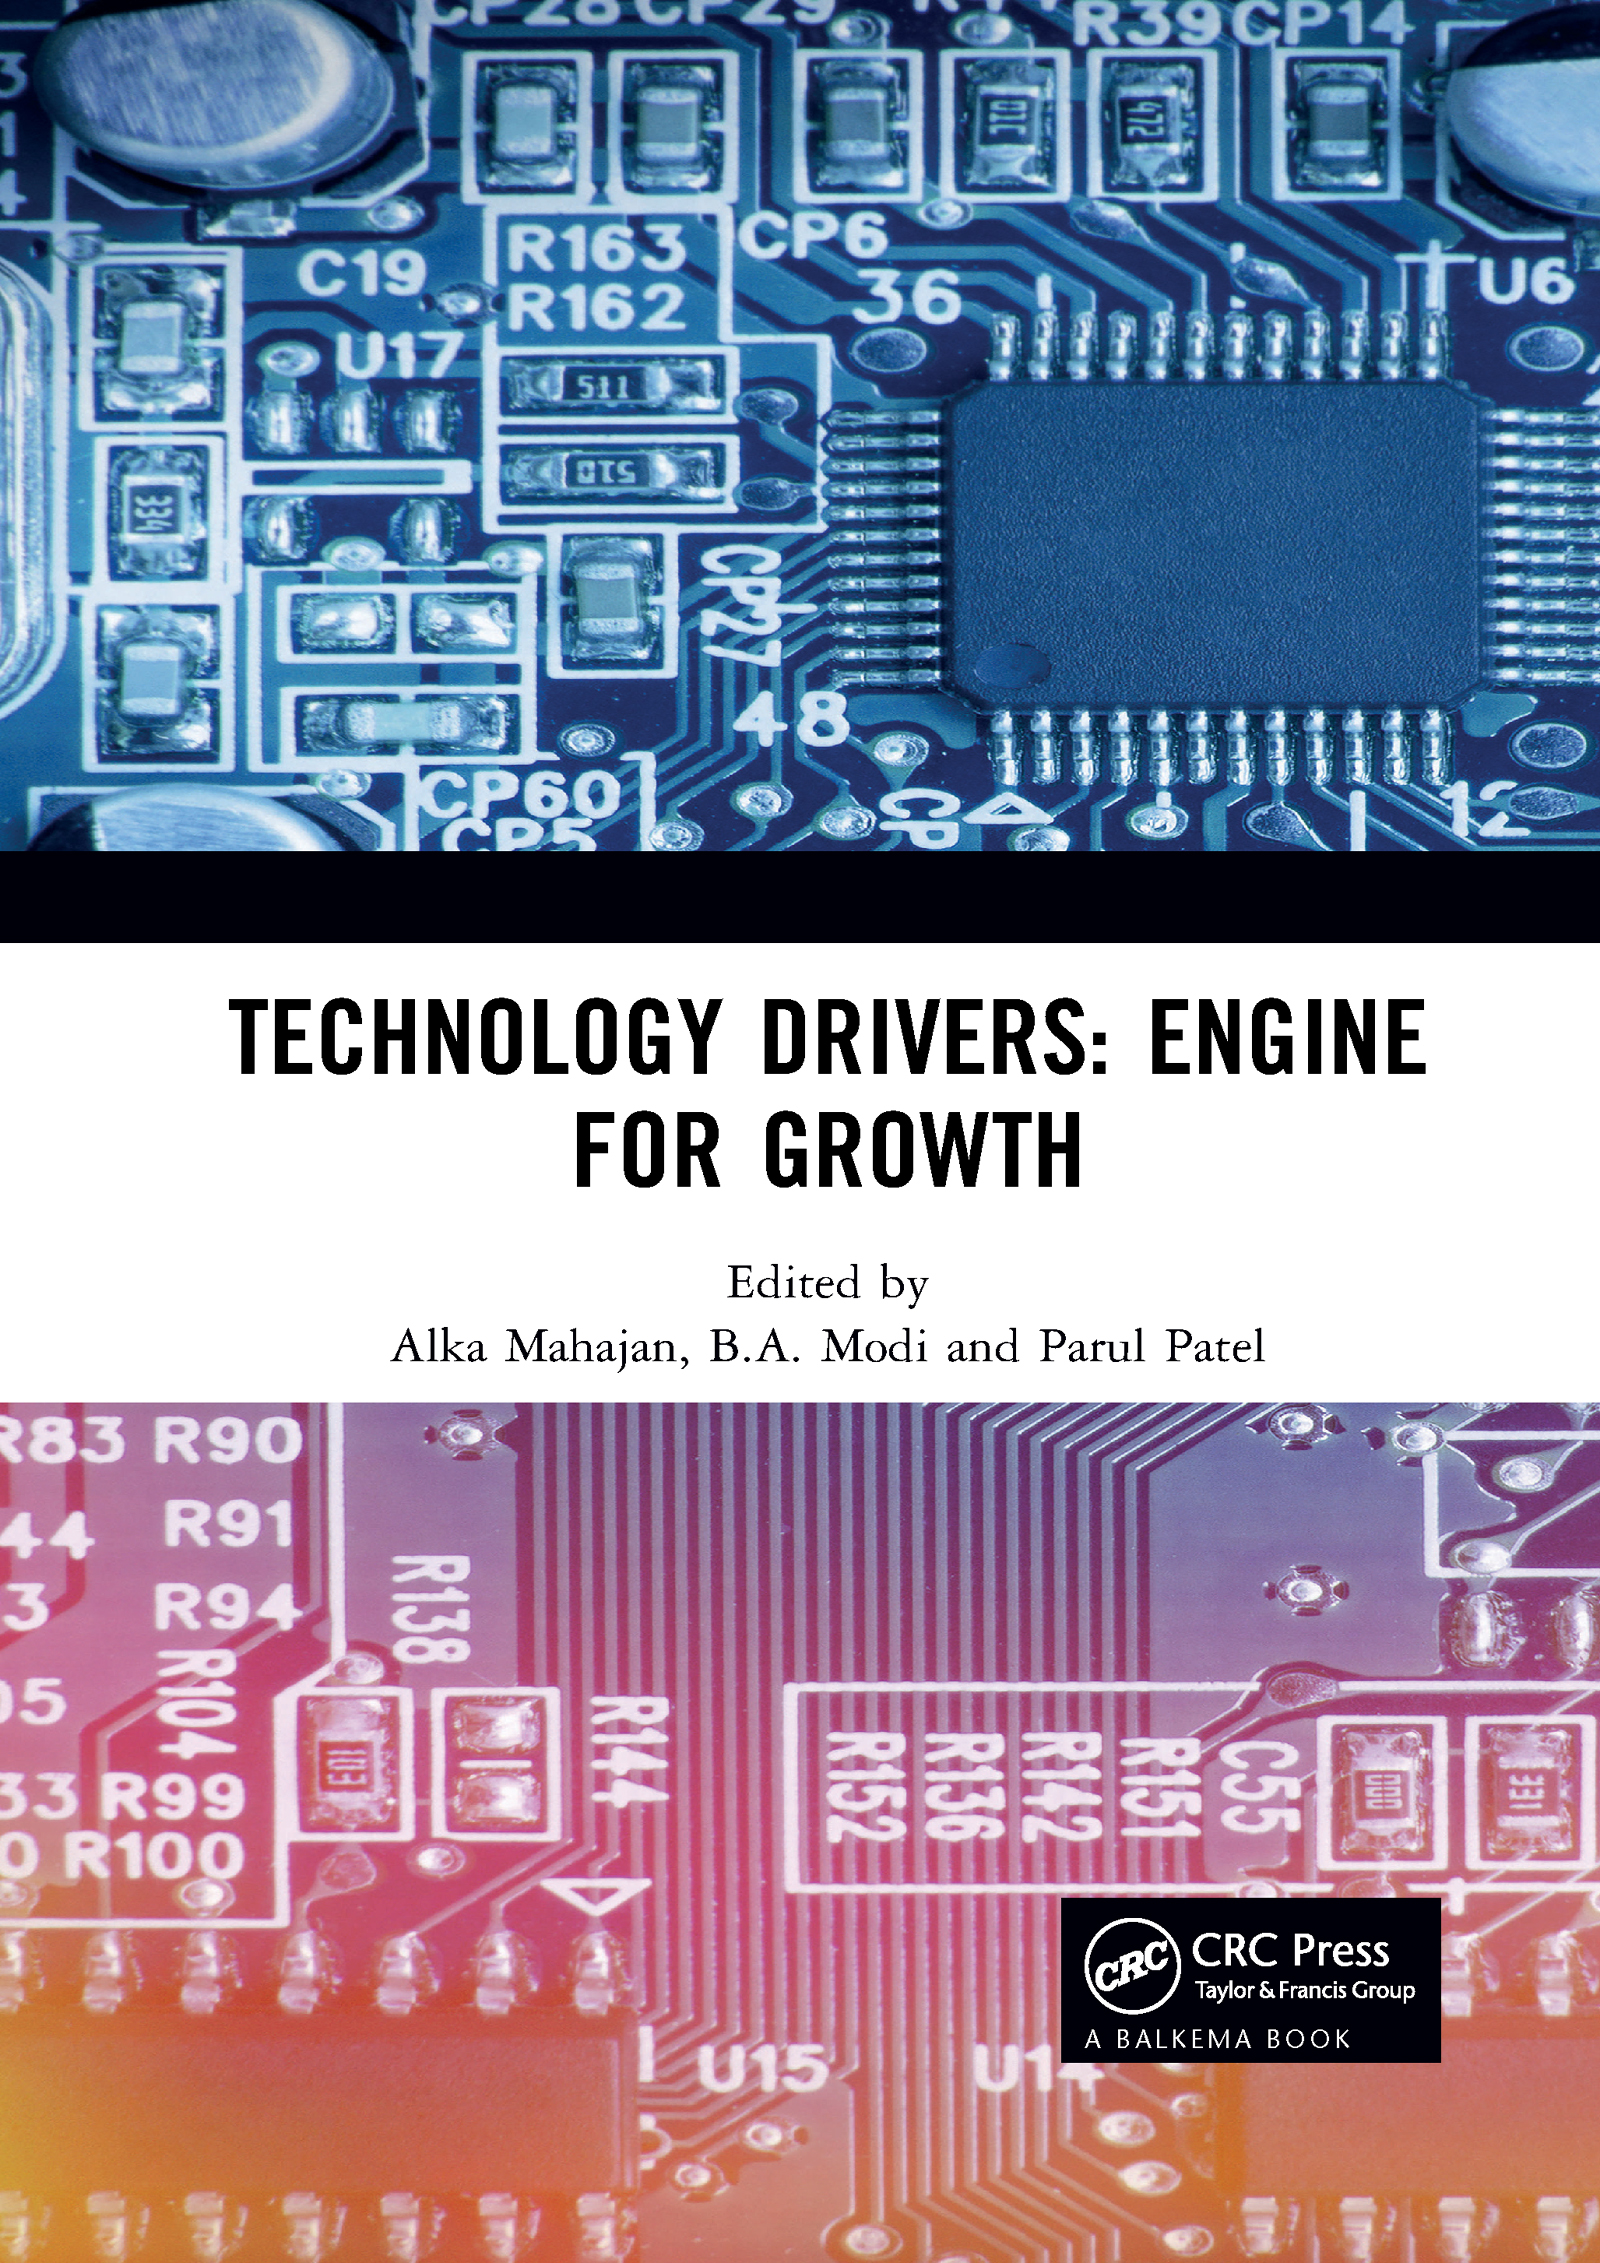 Technology Drivers: Engine for Growth